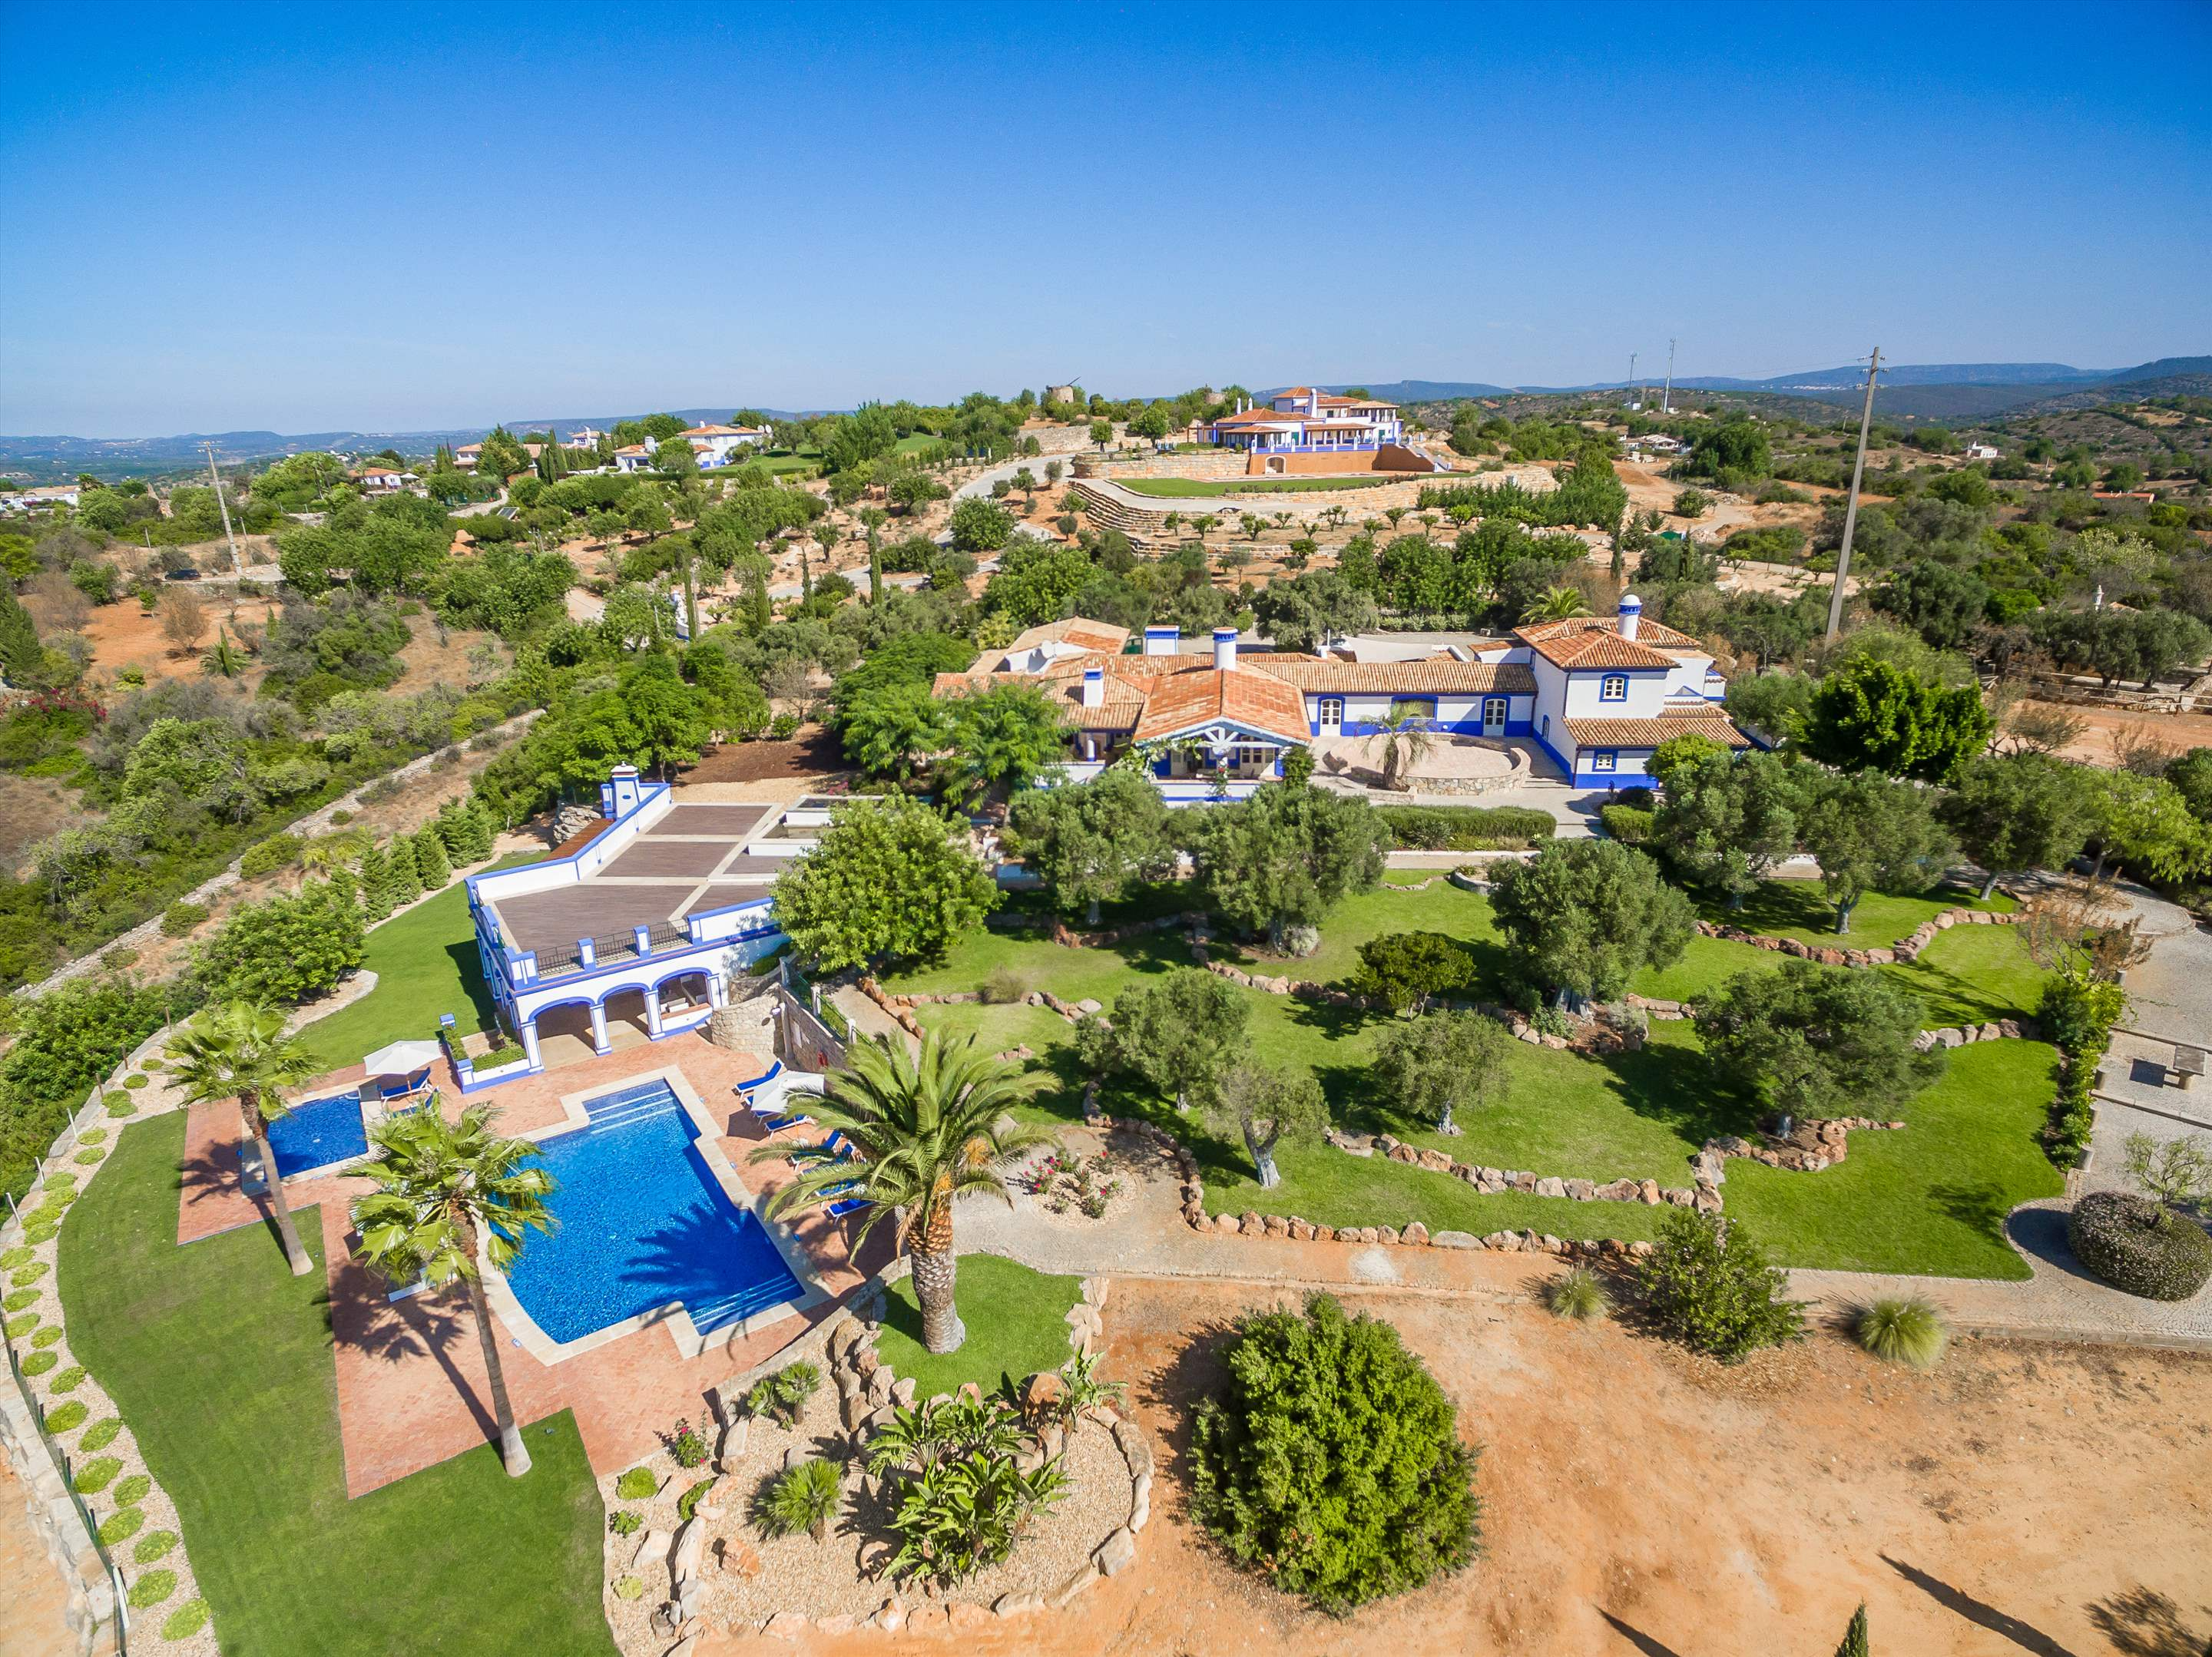 Casa Alemao, Main House, 5 Bedrooms, 5 bedroom villa in Vilamoura Area, Algarve Photo #1